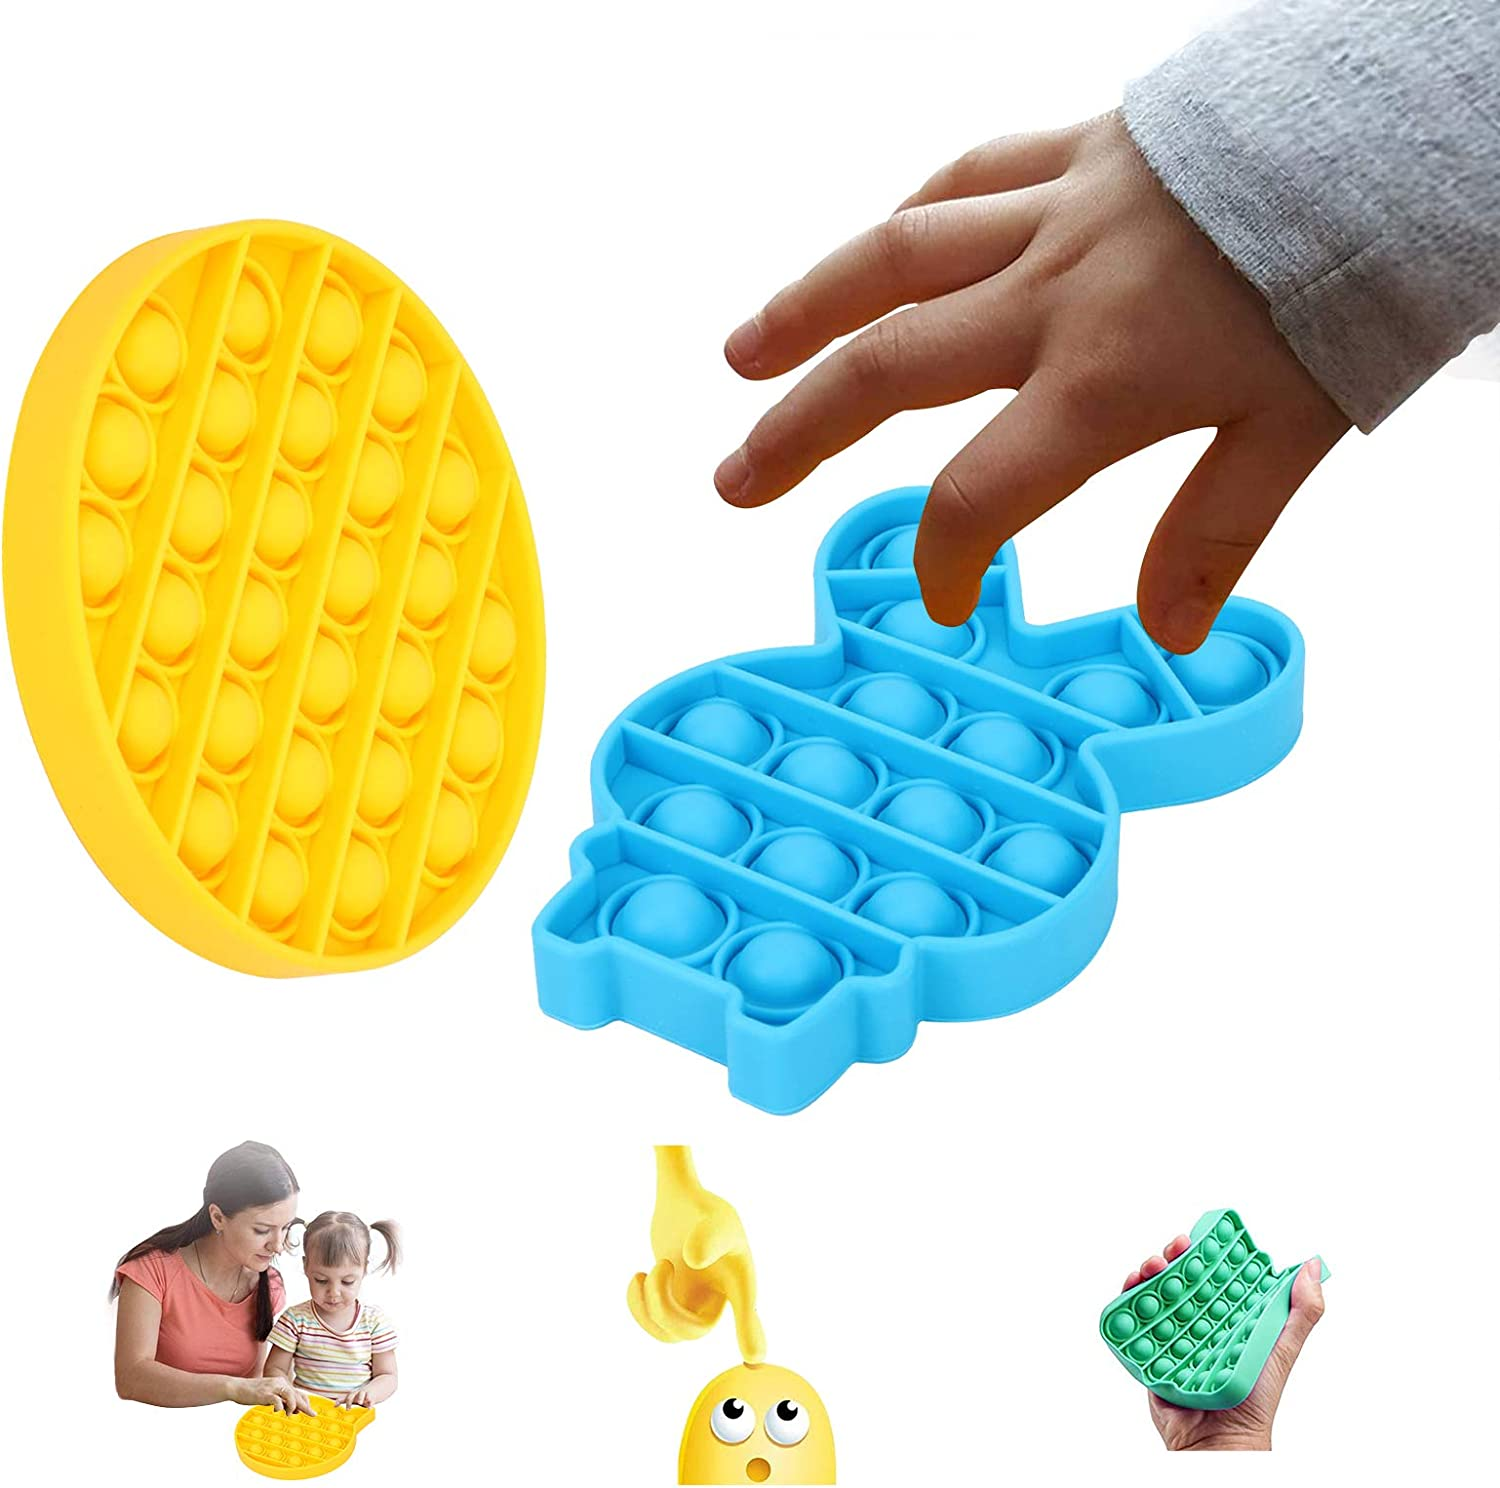 Relieve Stress Sensory Toy Push pop Bubble Sensory Fidget Toy Autism Special Needs Stress Reliever Help Restore Emotions Anxiety Relief Toys Silicone Extrusion Bubble Fidget Squeeze Toys B